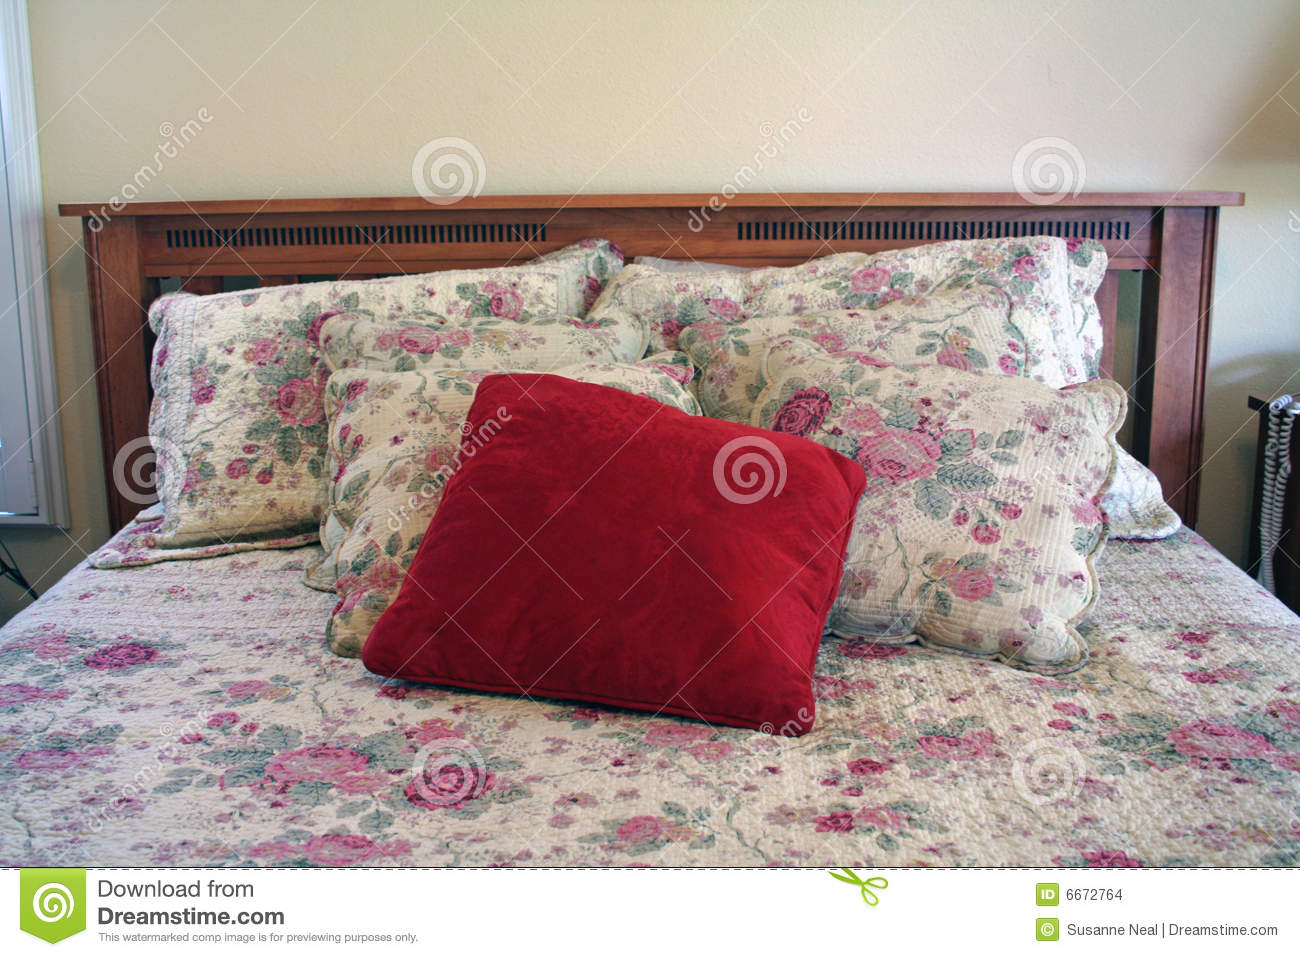 A bed headboard pillows bedspead stock images image for Headboard made pillows